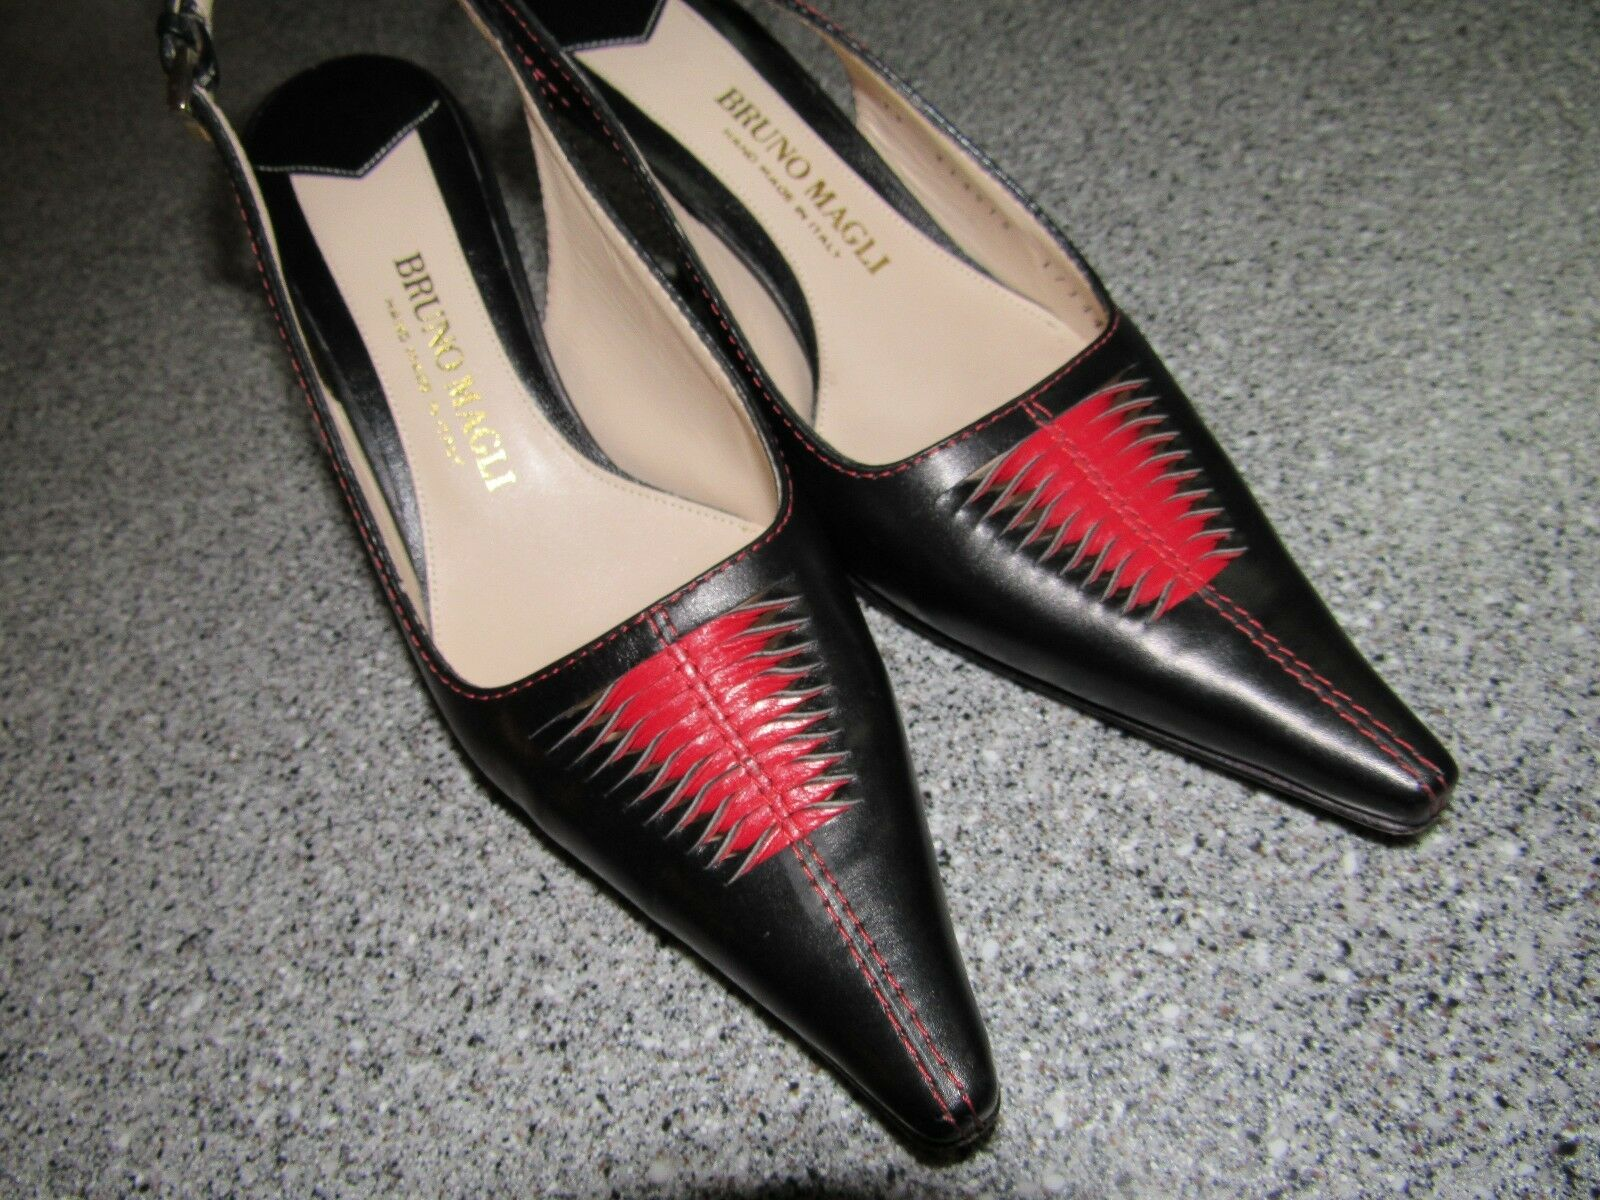 BEAUTIFUL PAIR OF BRUNO MAGLI HEELS PUMPS Größe 36 HAND MADE IN ITALY STRAP